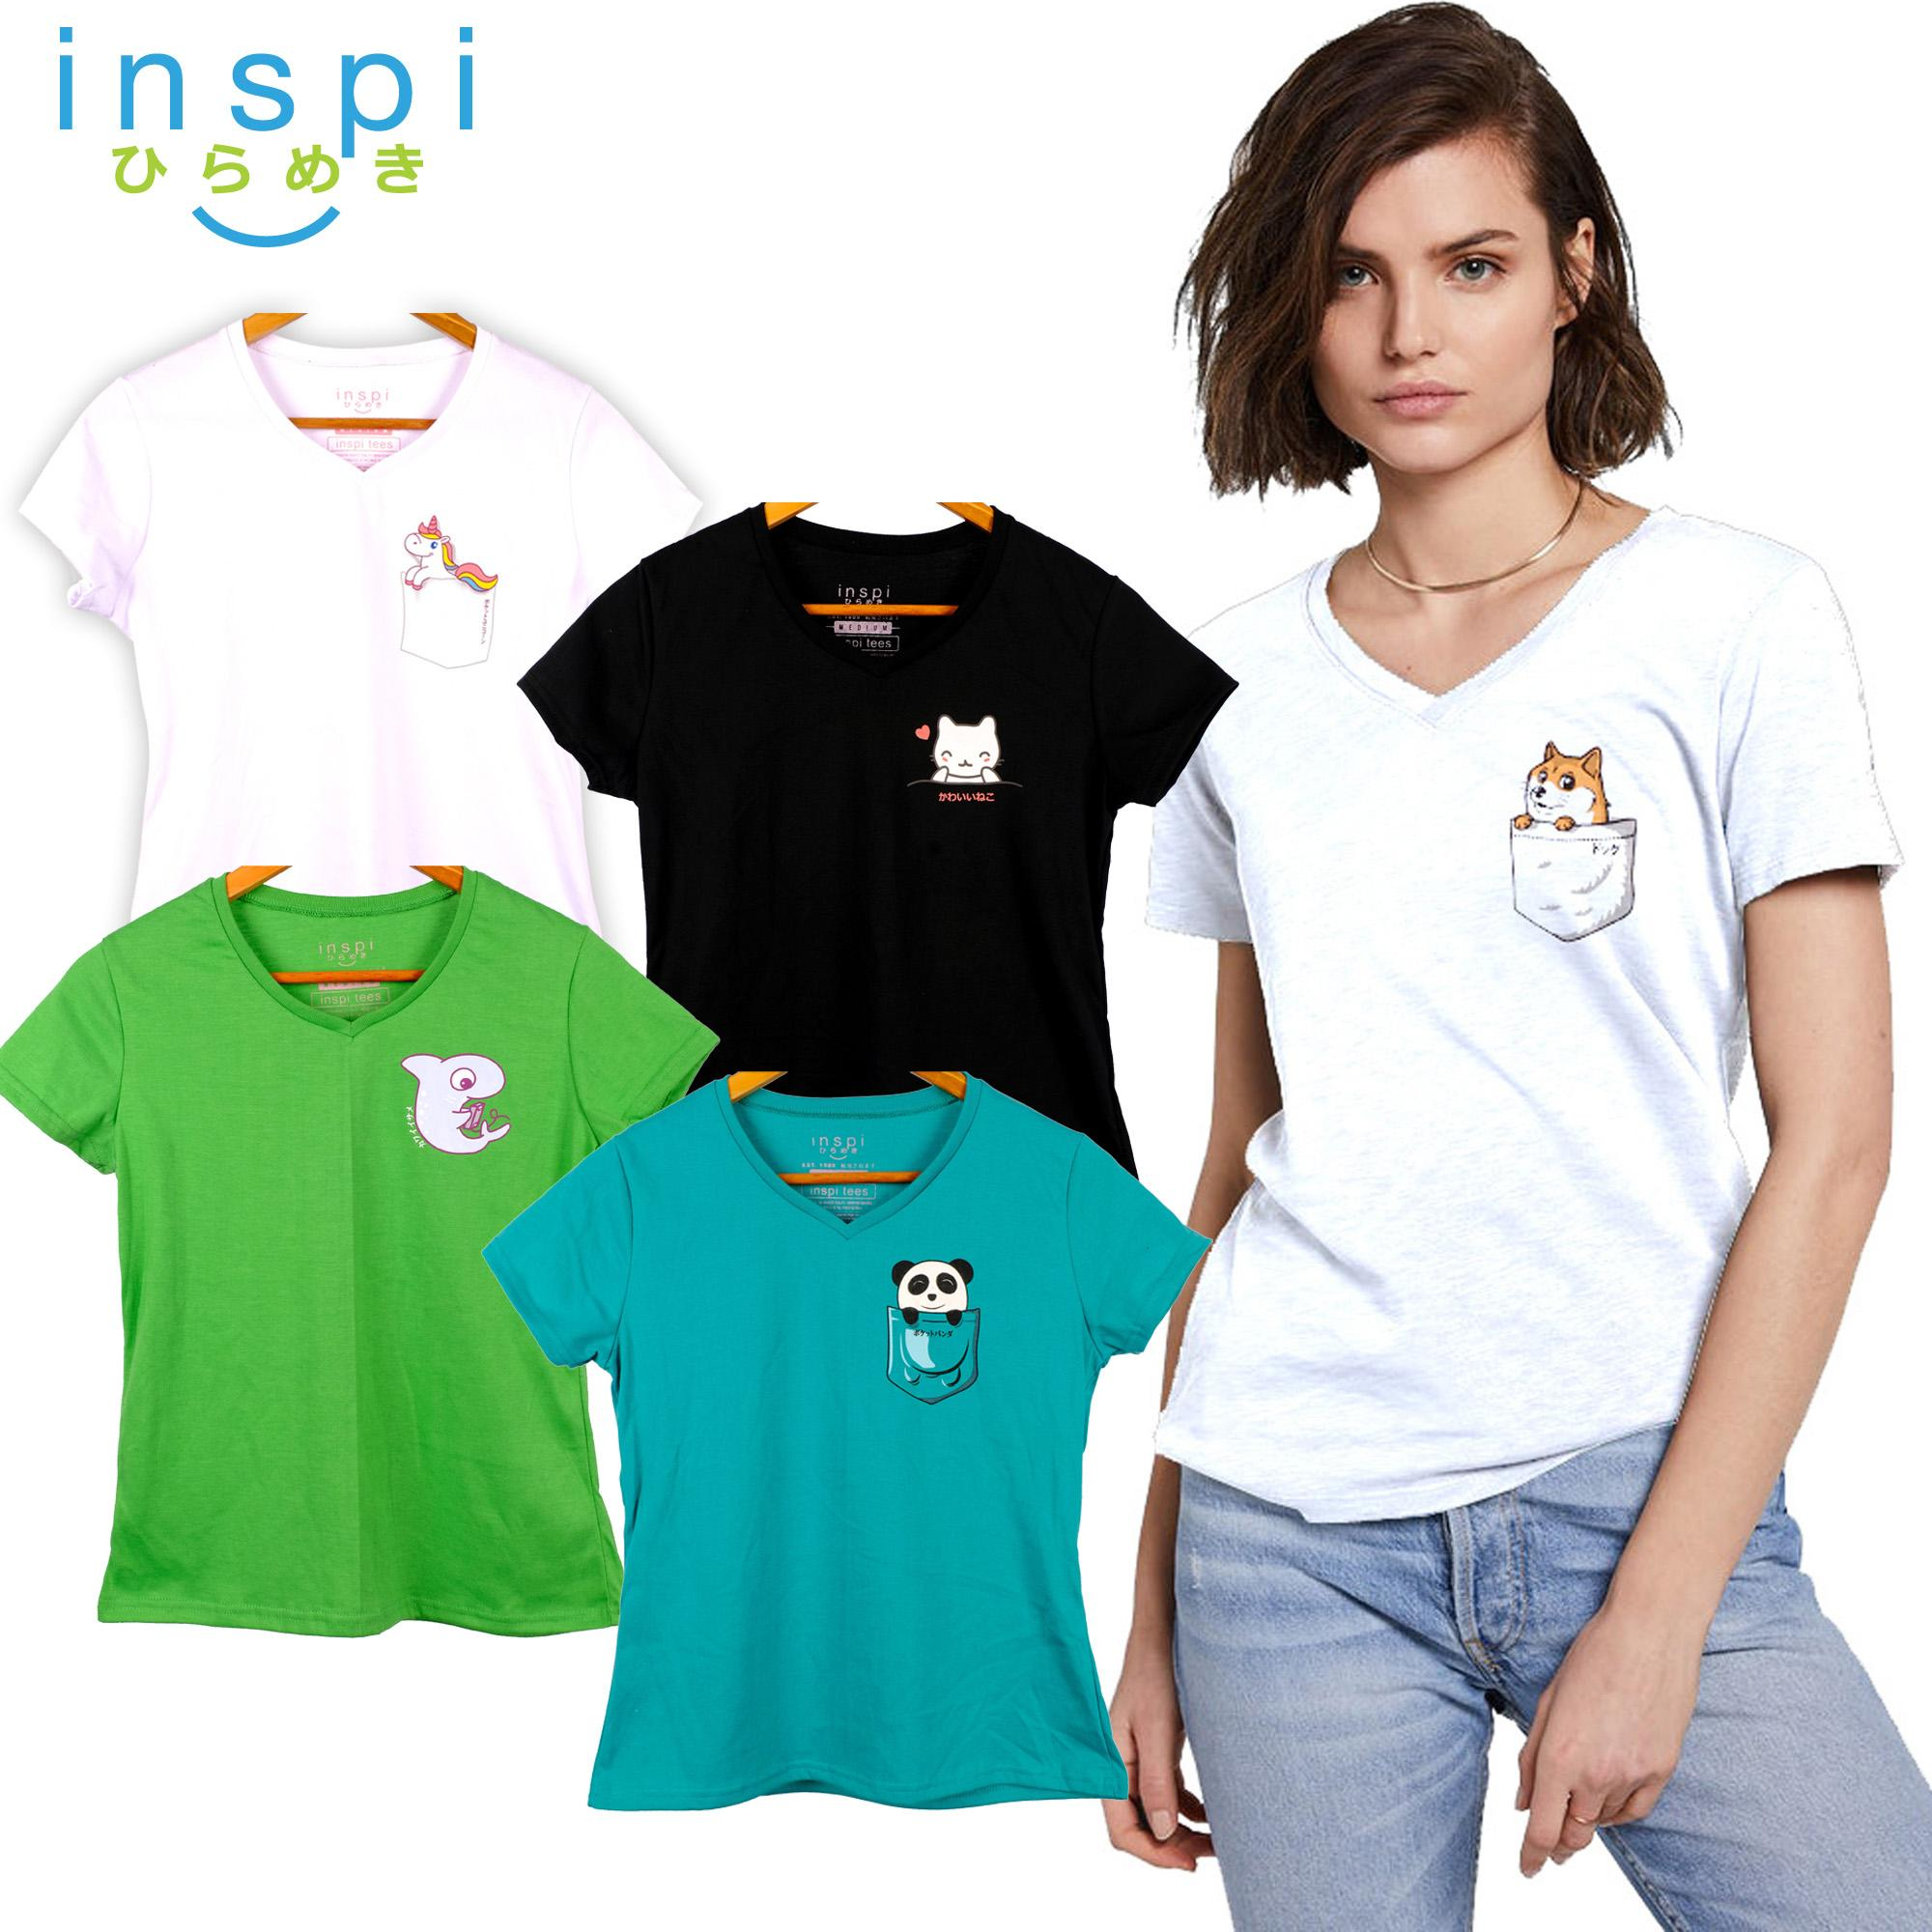 0c7599303baf INSPI Tees Ladies Semi Fit Pocket Friends Collection tshirt printed graphic  tee t shirt shirts tshirts